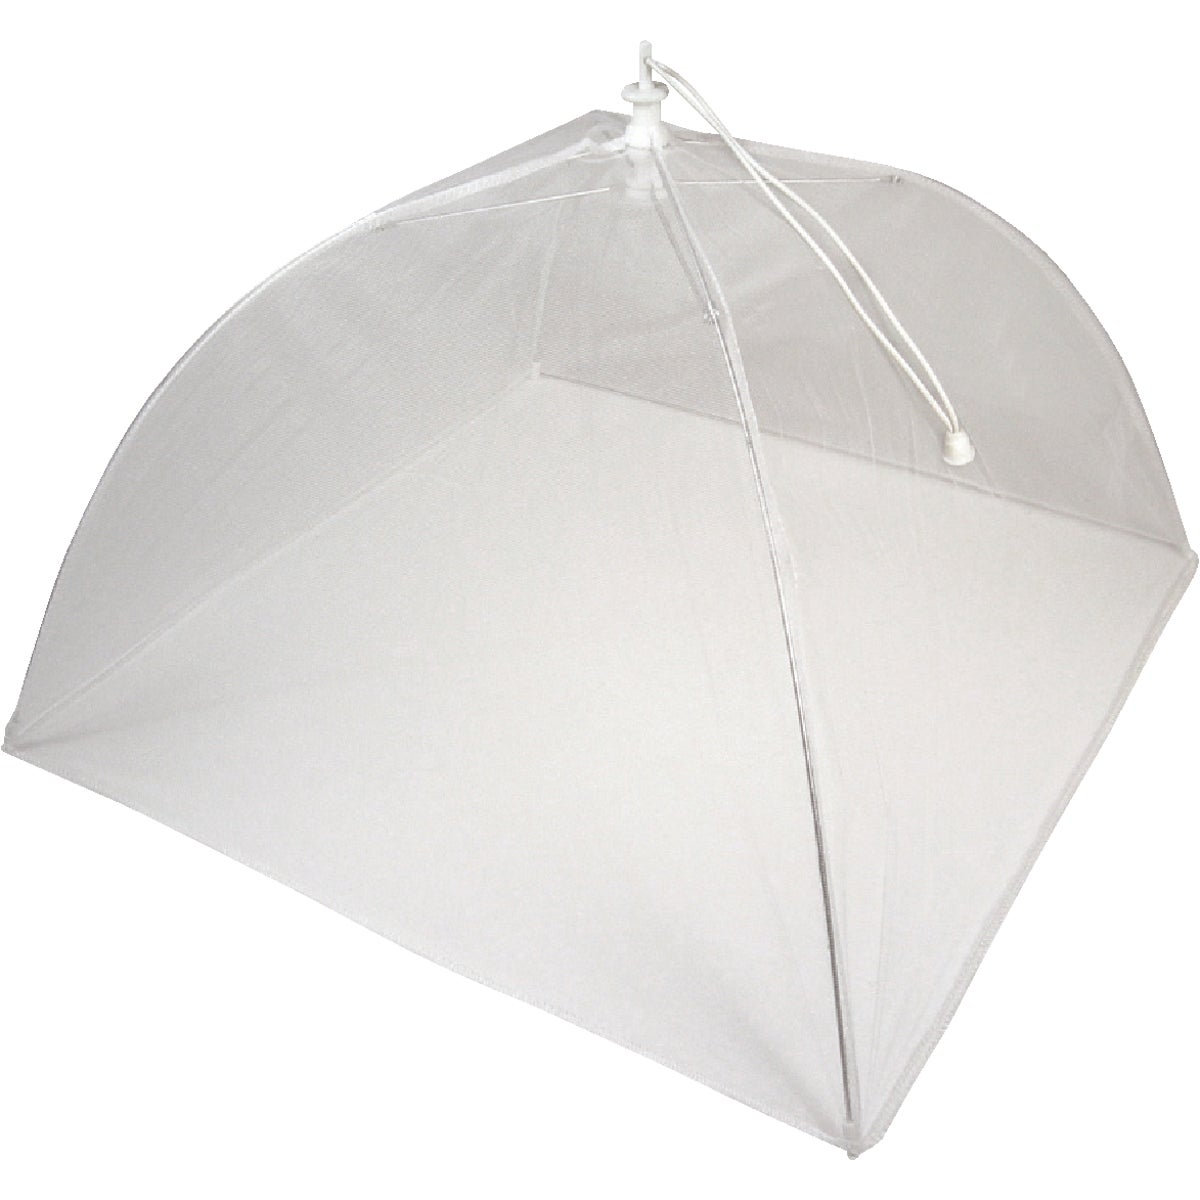 "17"" FOOD UMBRELLA"